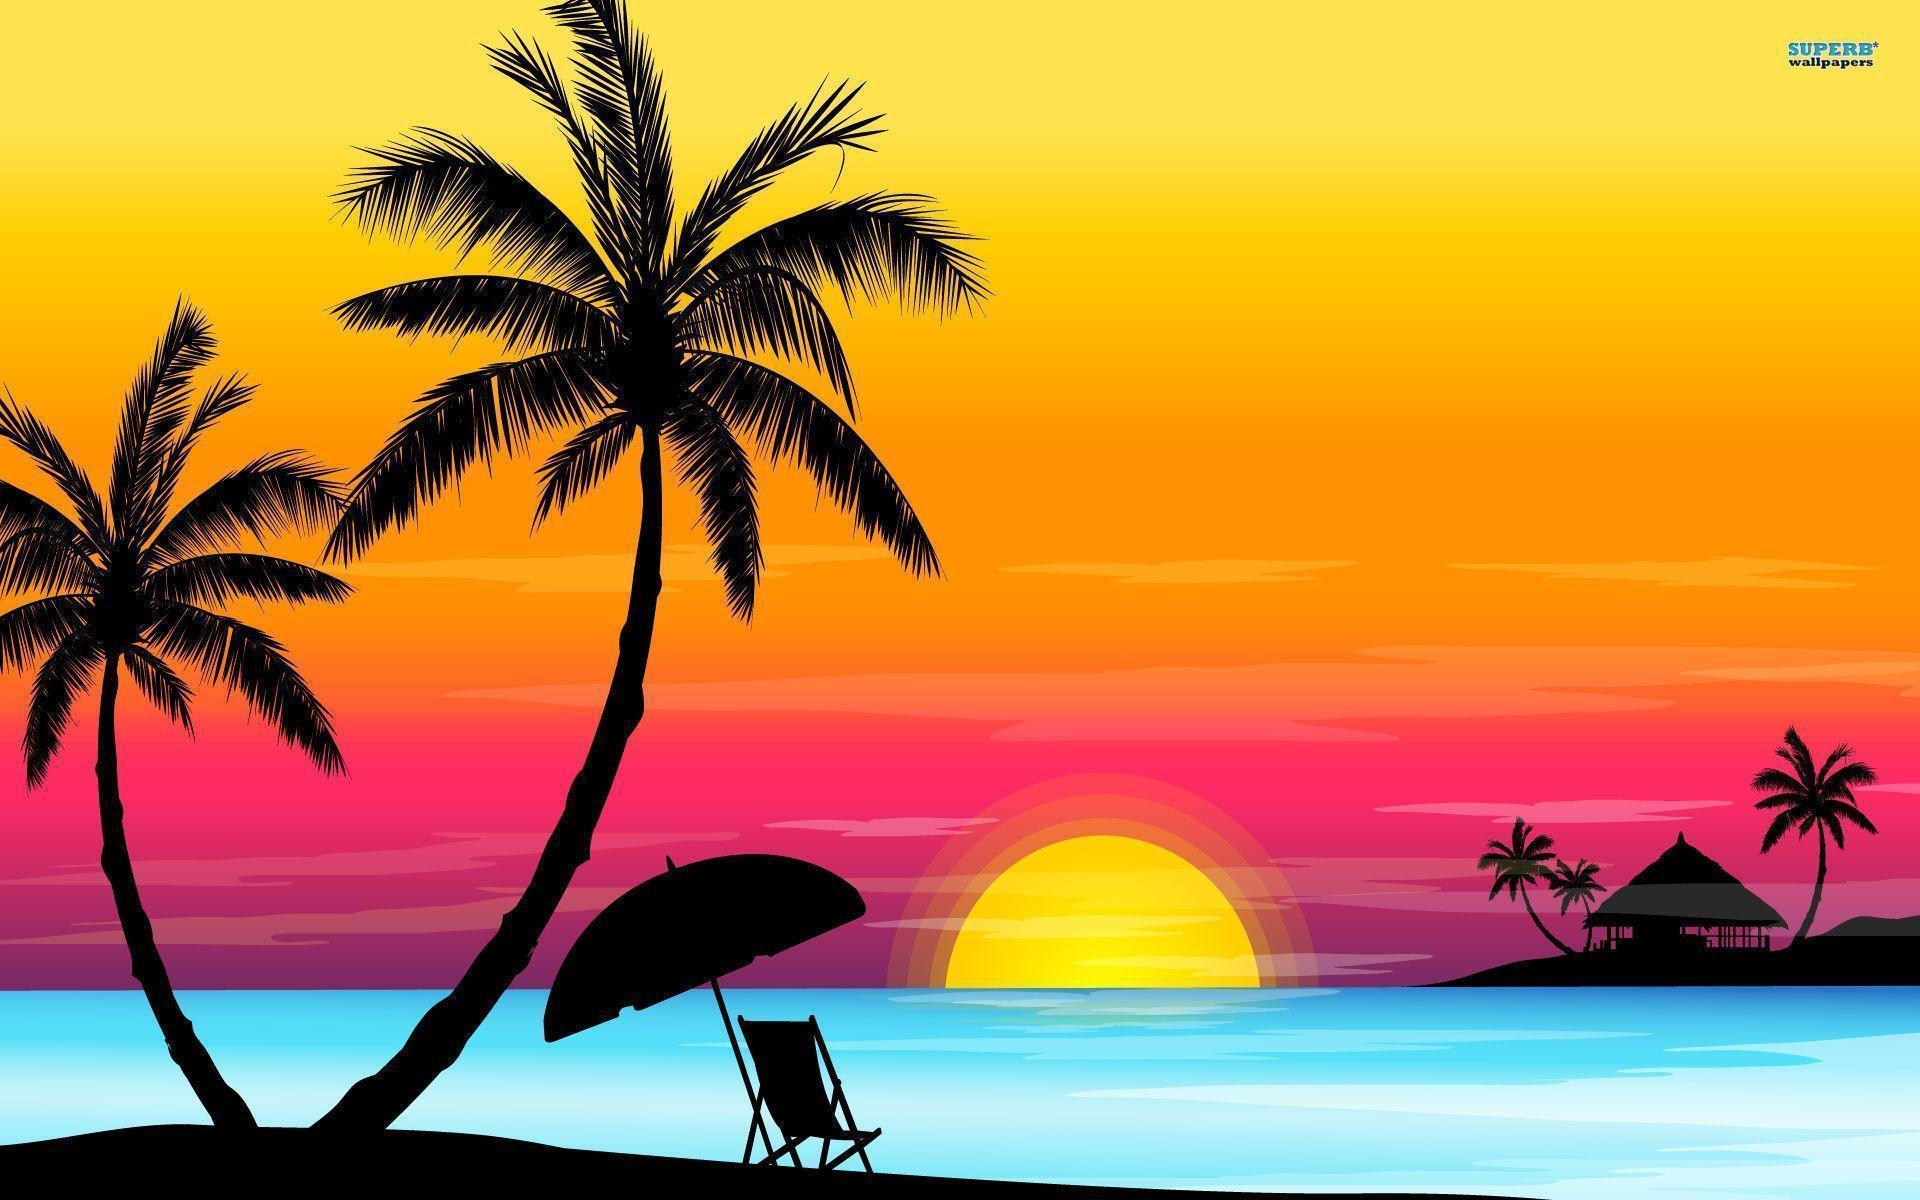 Vector Love cartoon Wallpaper : Sunset Beaches Wallpapers - Wallpaper cave